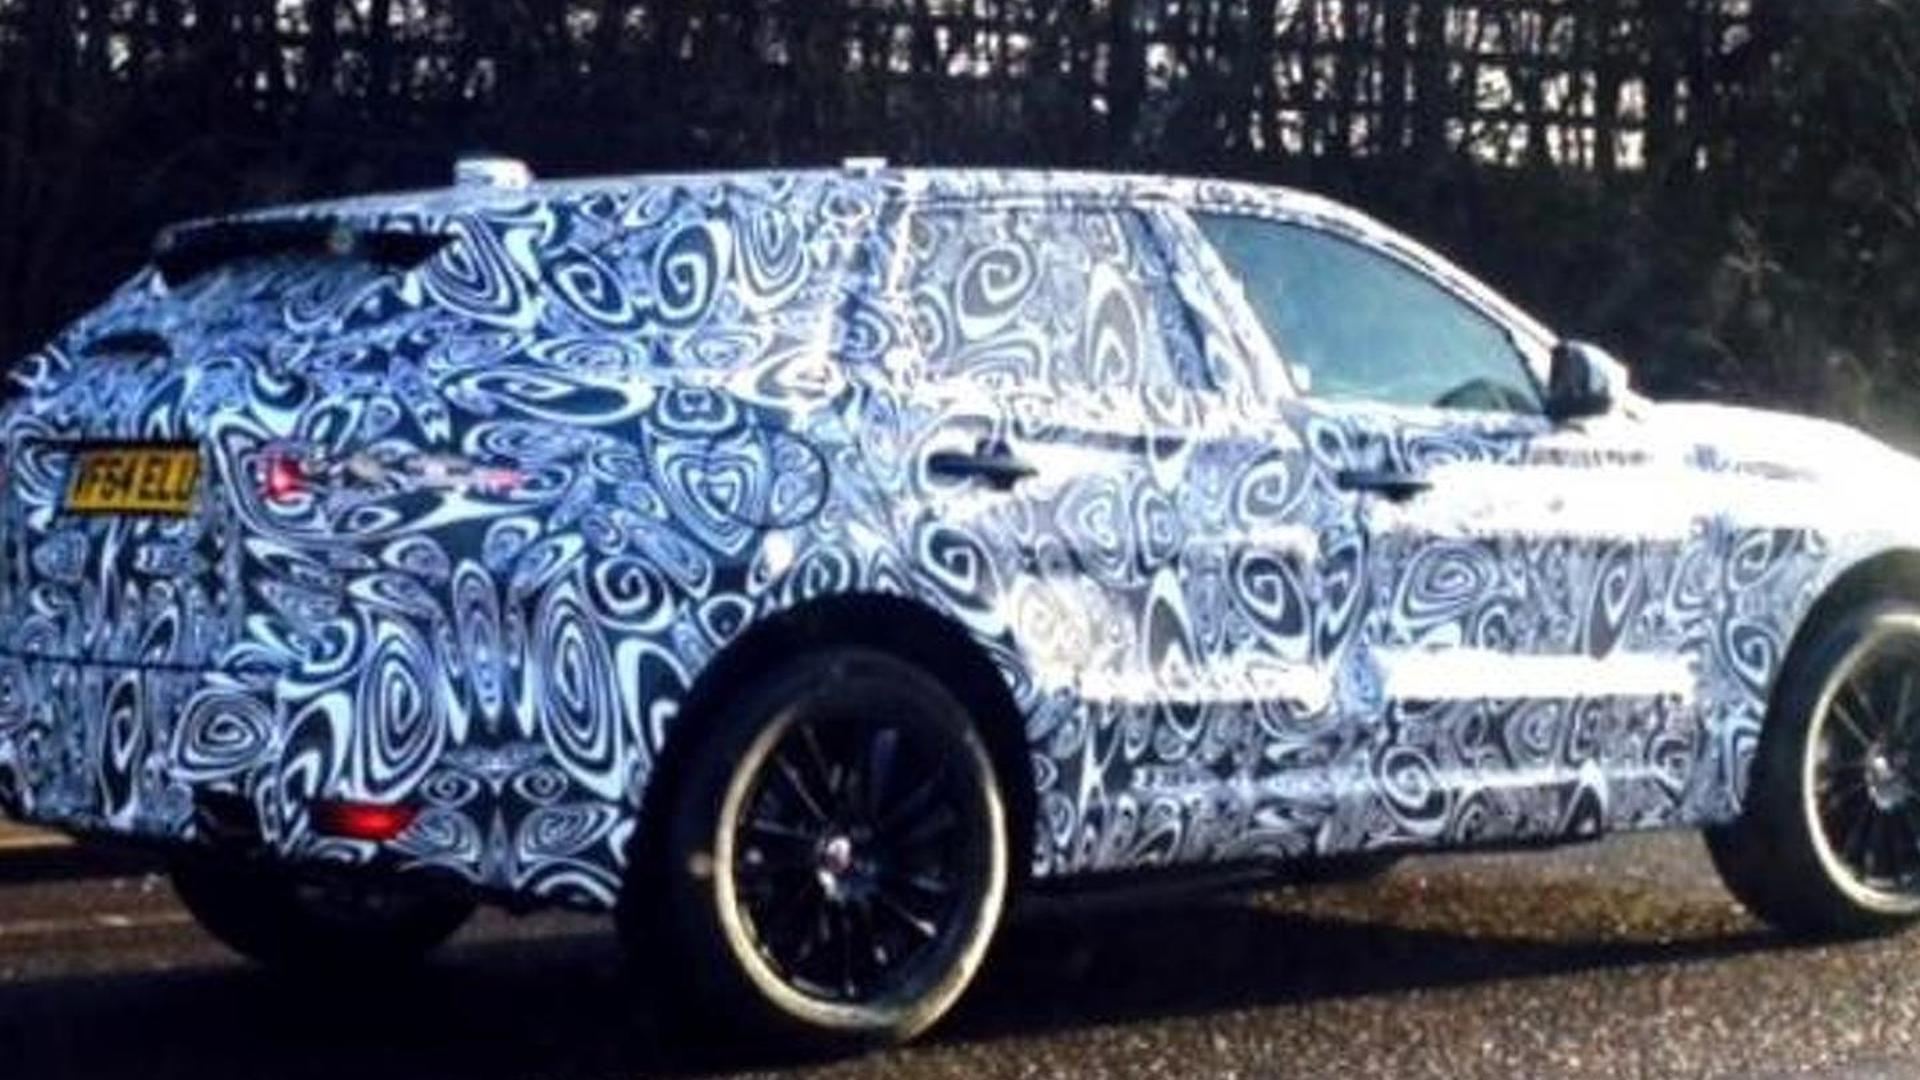 Jaguar F-Pace spied testing in UK